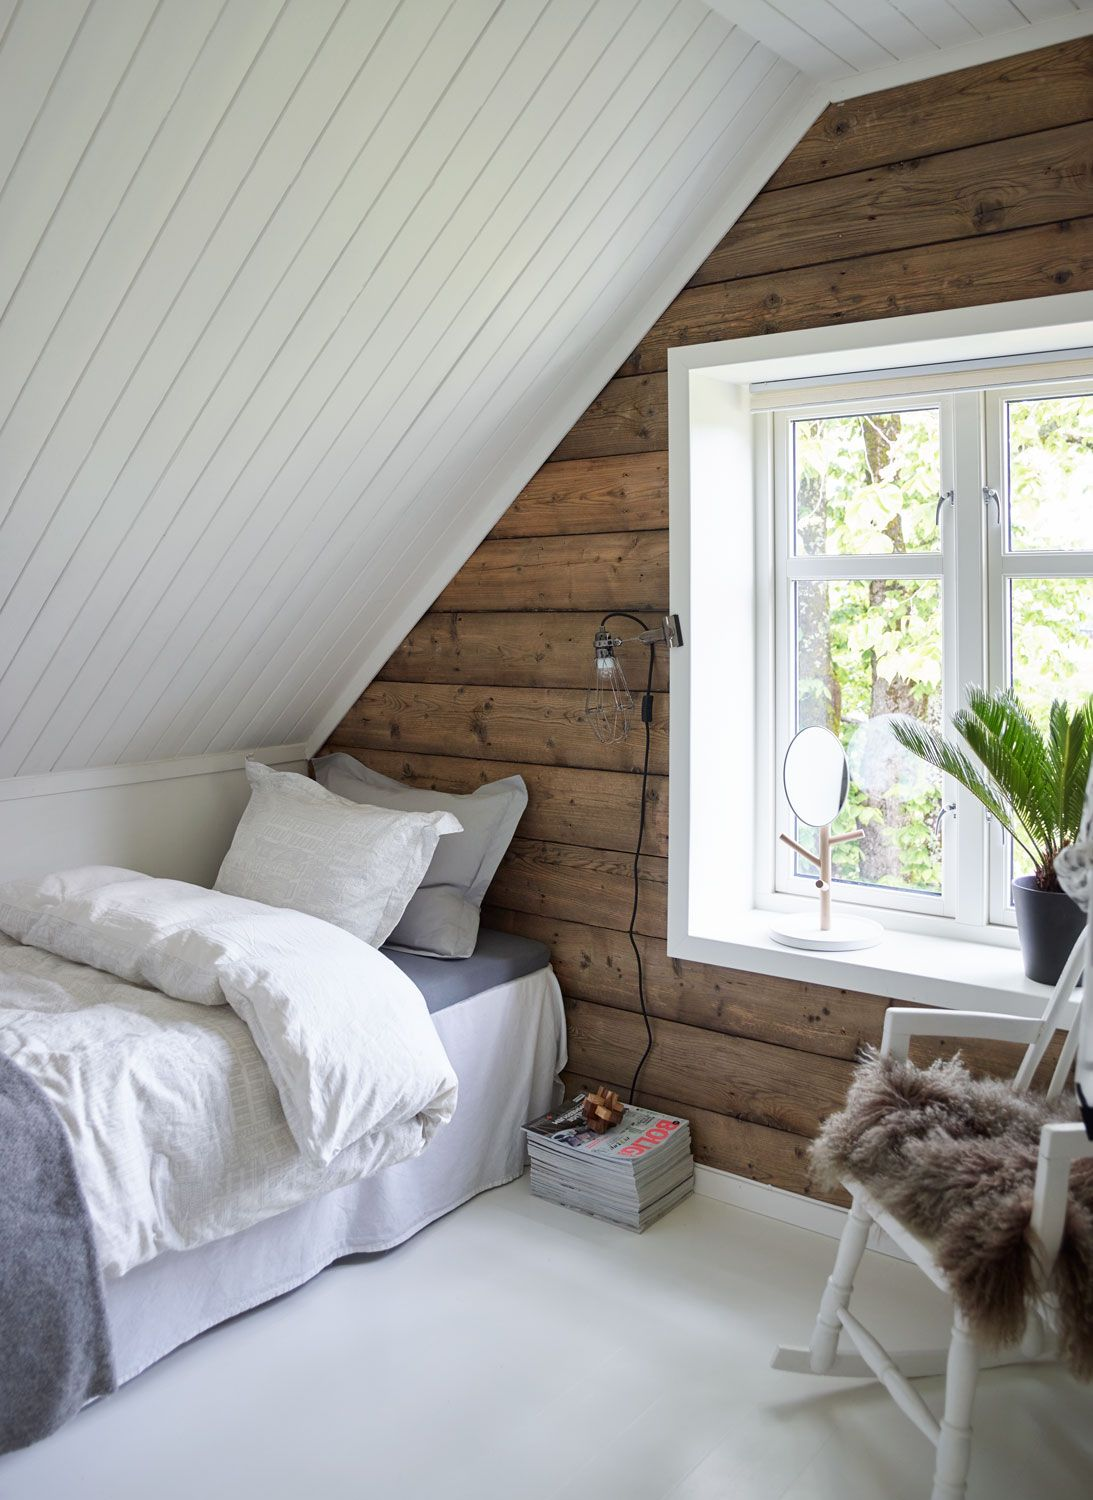 Attic Bedroom Design and Décor Tips | spaces | Attic bedroom designs ...